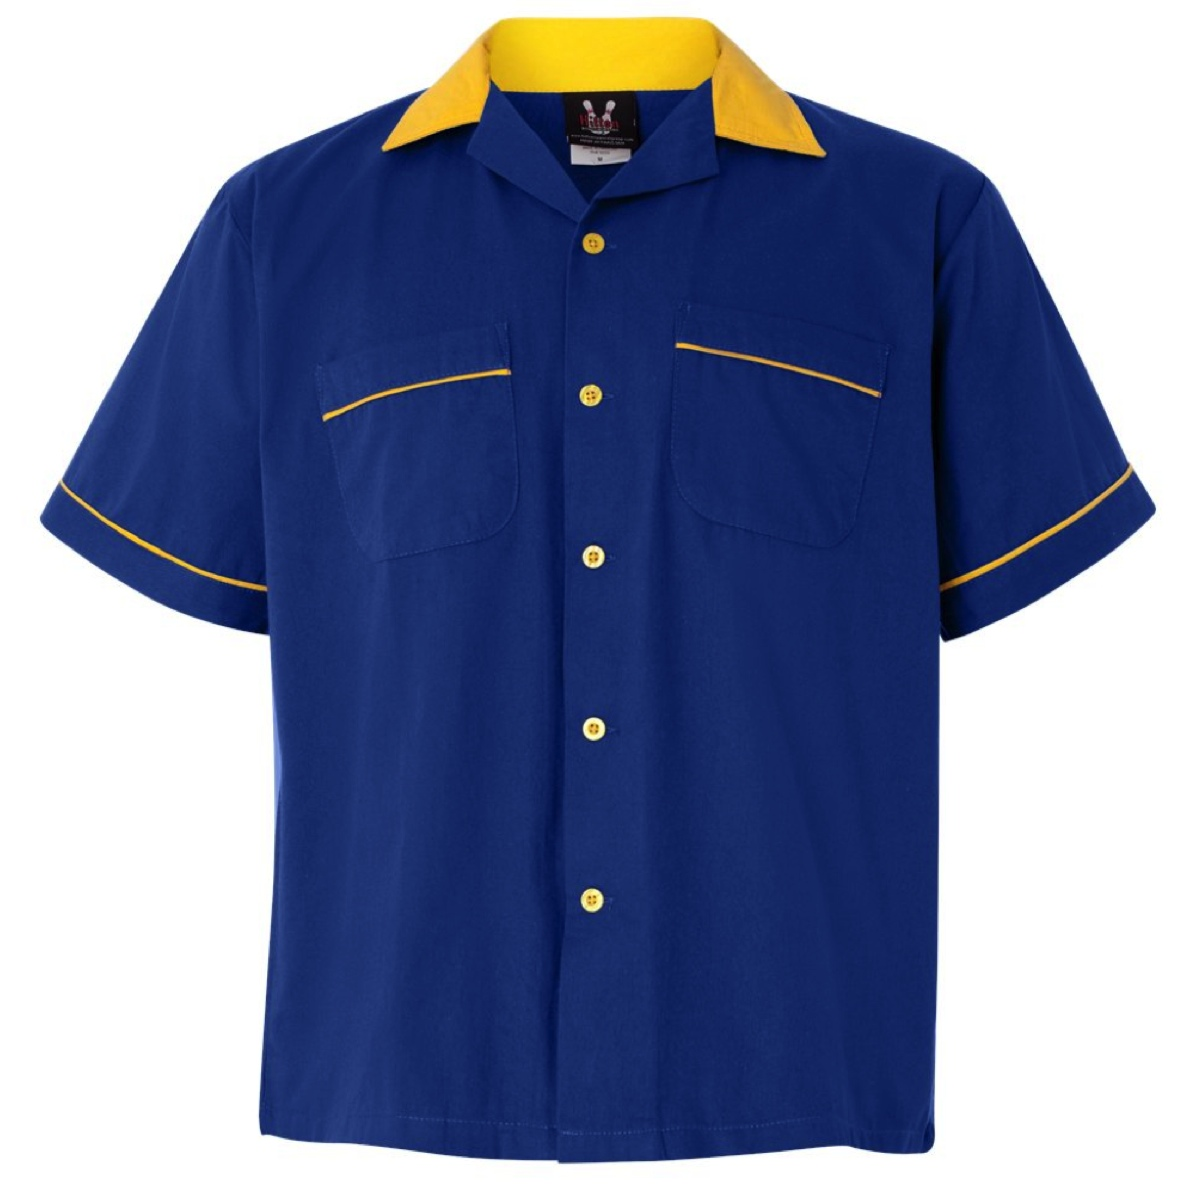 HP2244 Hilton - GM Legend Bowling Shirt